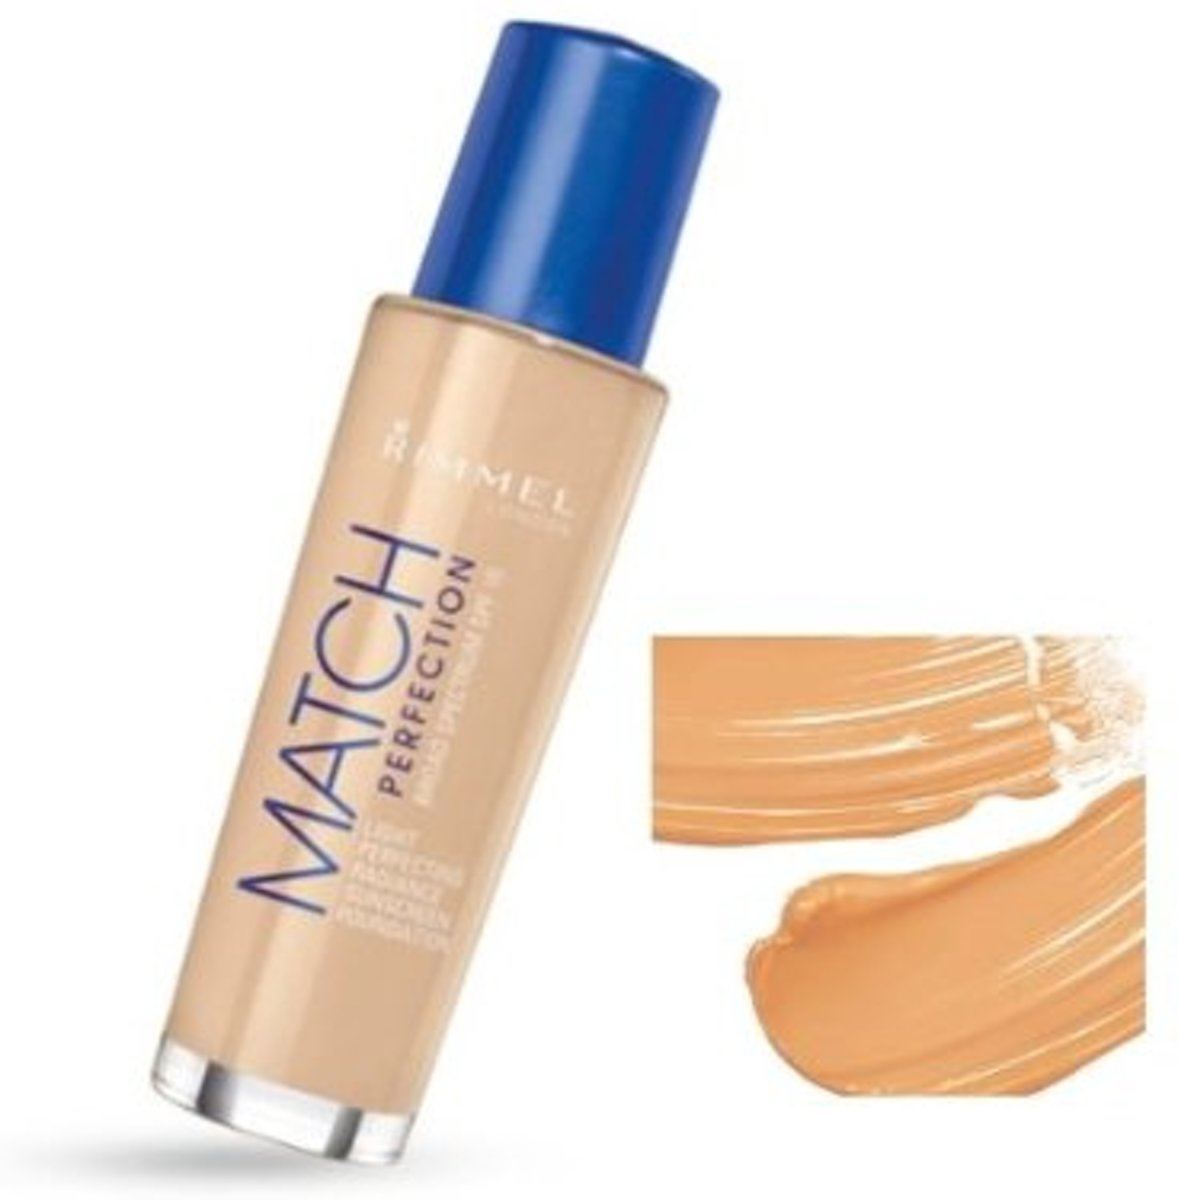 Rimmel London Match Perfection Foundation - 103 True Ivory